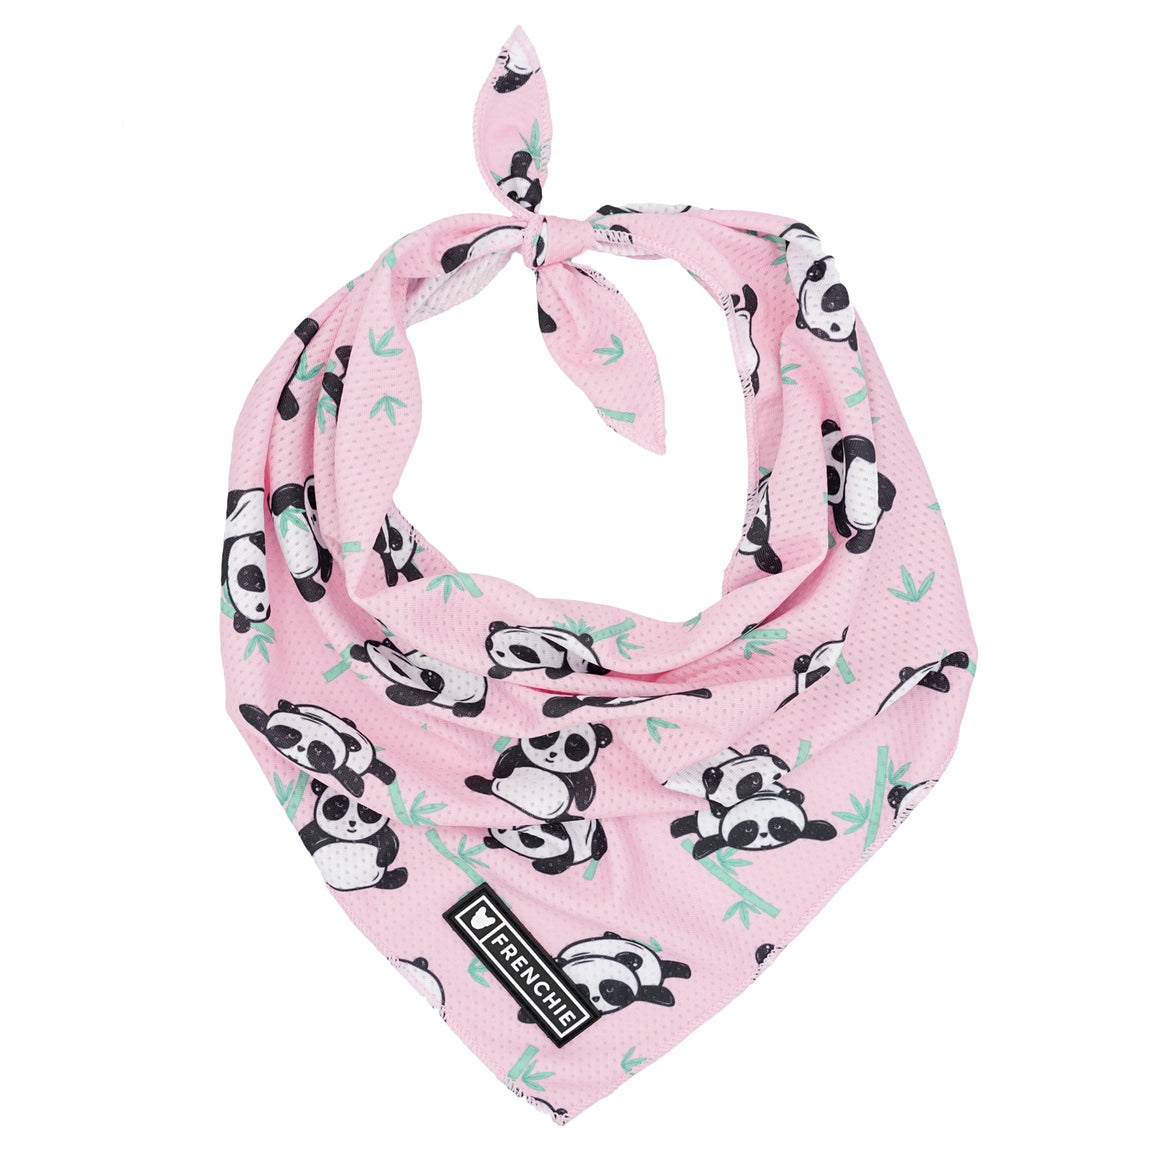 Frenchie Cooling Bandana - Panda - Frenchie Bulldog - Shop Harnesses for French Bulldogs - Shop French Bulldog Harness - Harnesses for Pugs